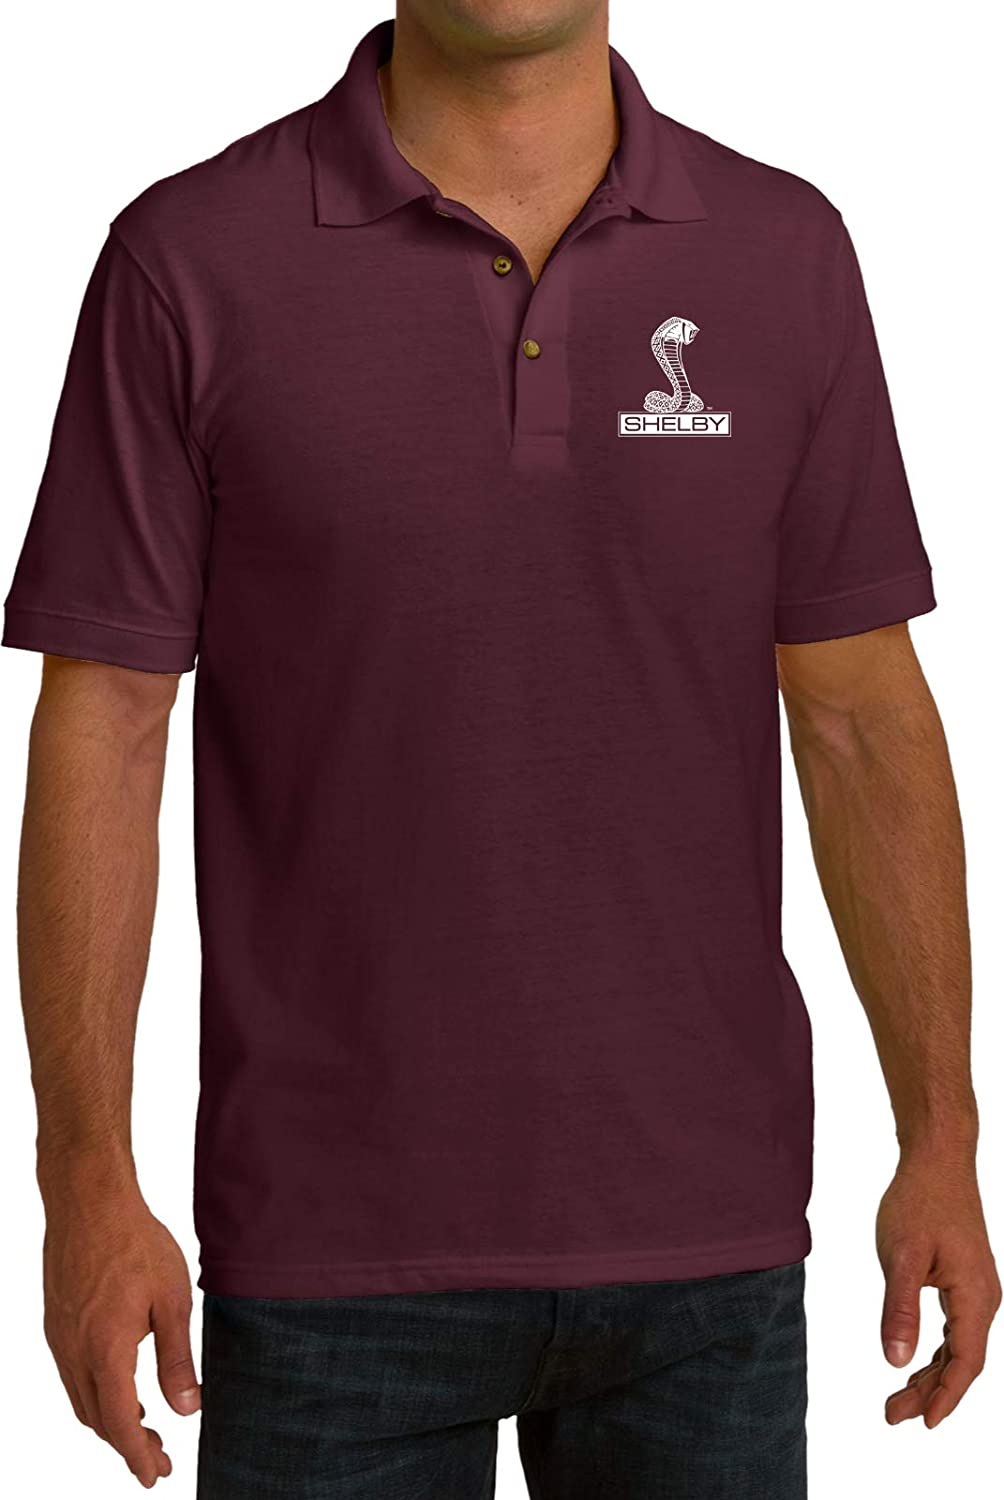 Ford Shelby Cobra Pocket Print Pique Polo, Athletic Maroon Small